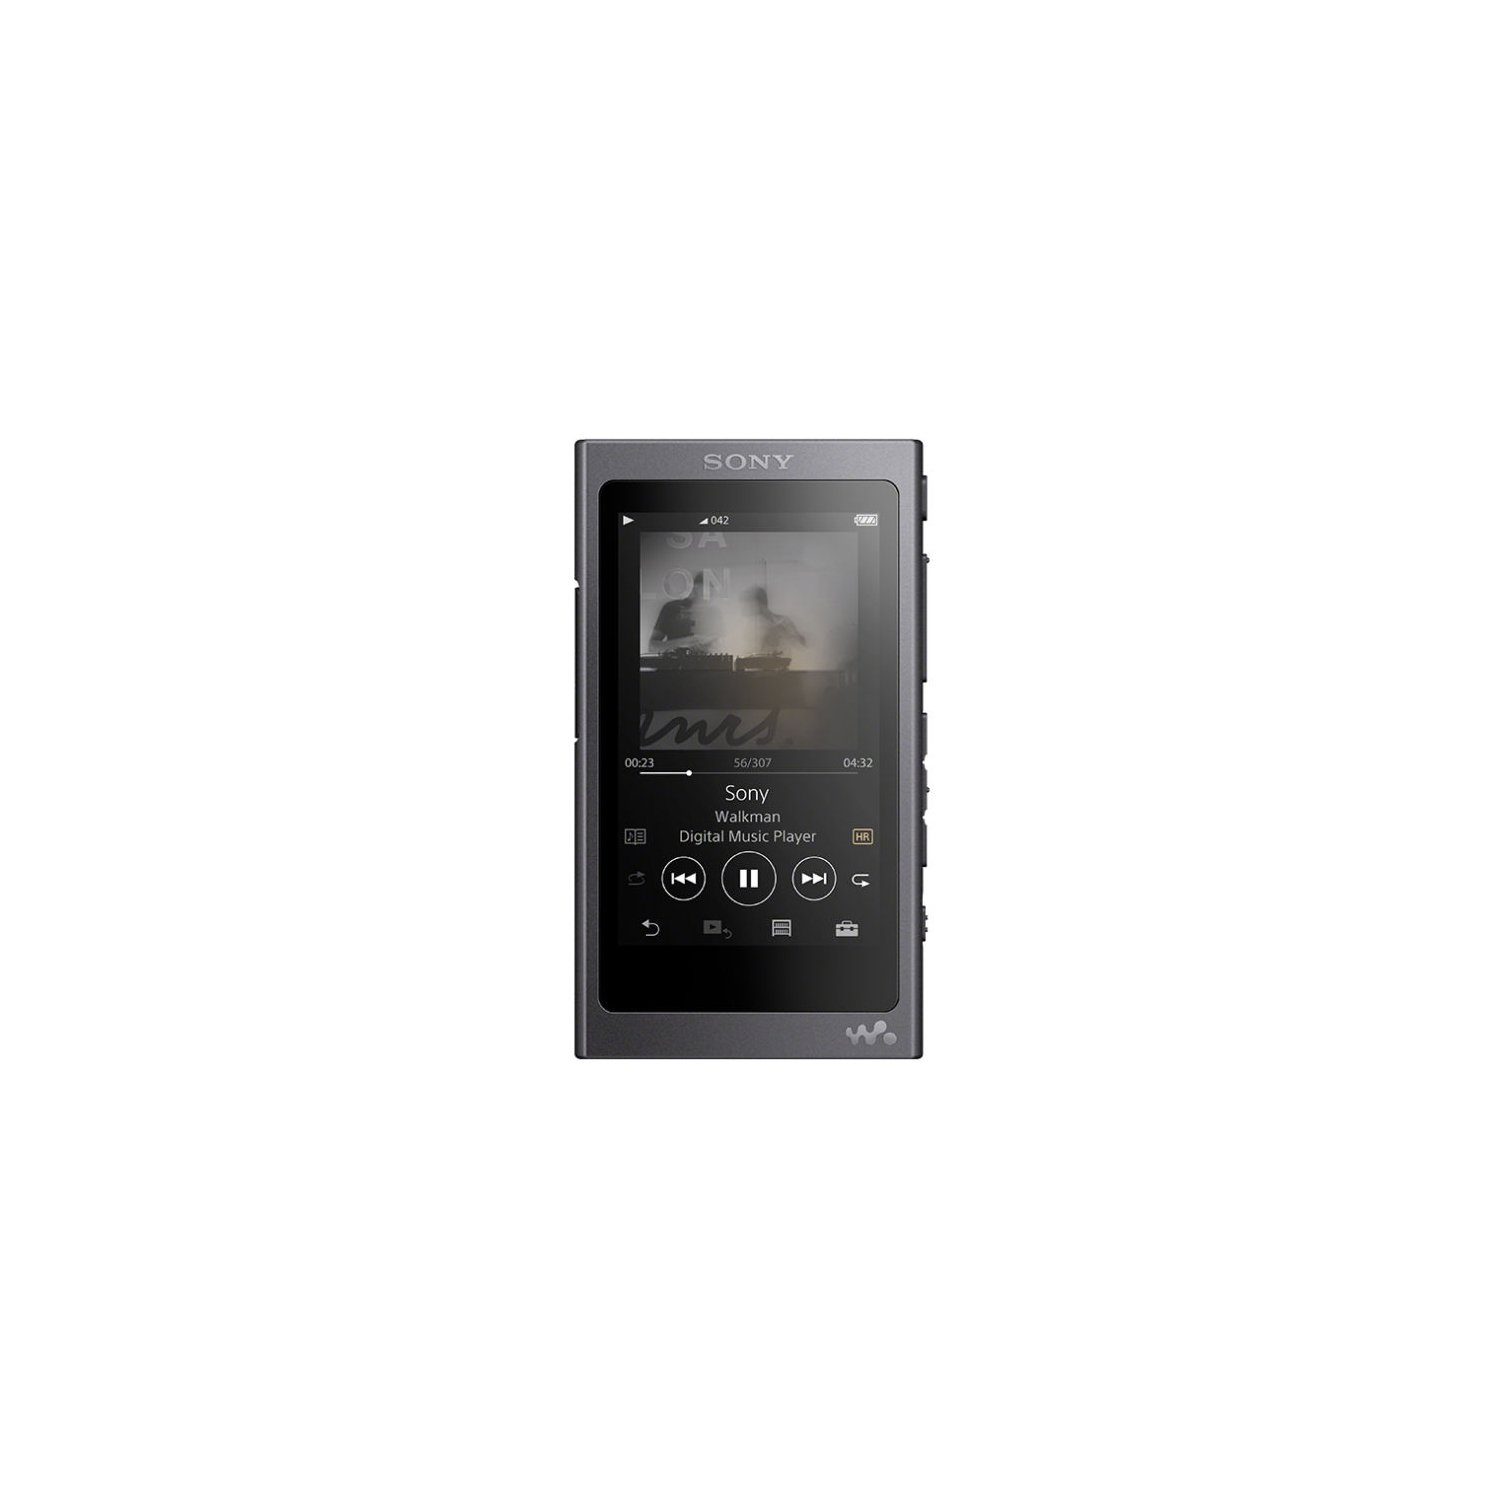 Sony NW-A45 16GB Mp3 Player